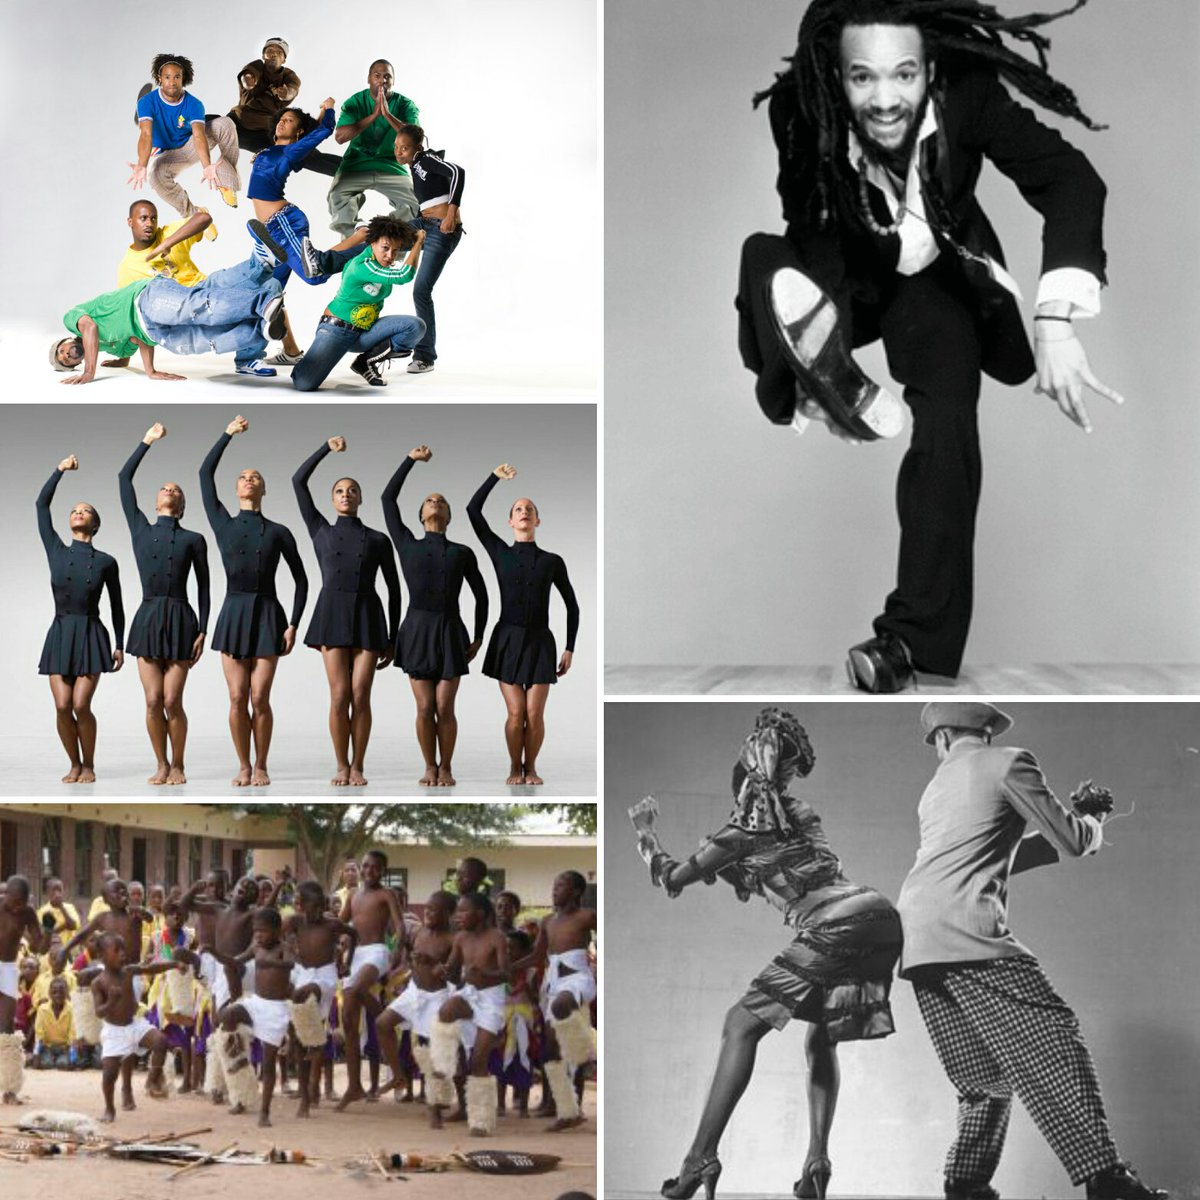 TODAY'S THE DAY! 1pm ET the time! We're talkin Classically Black DANCE w/ @jaamilkosoko & YOU! Join on #ClassicBlack https://t.co/kgOtbUkWg9